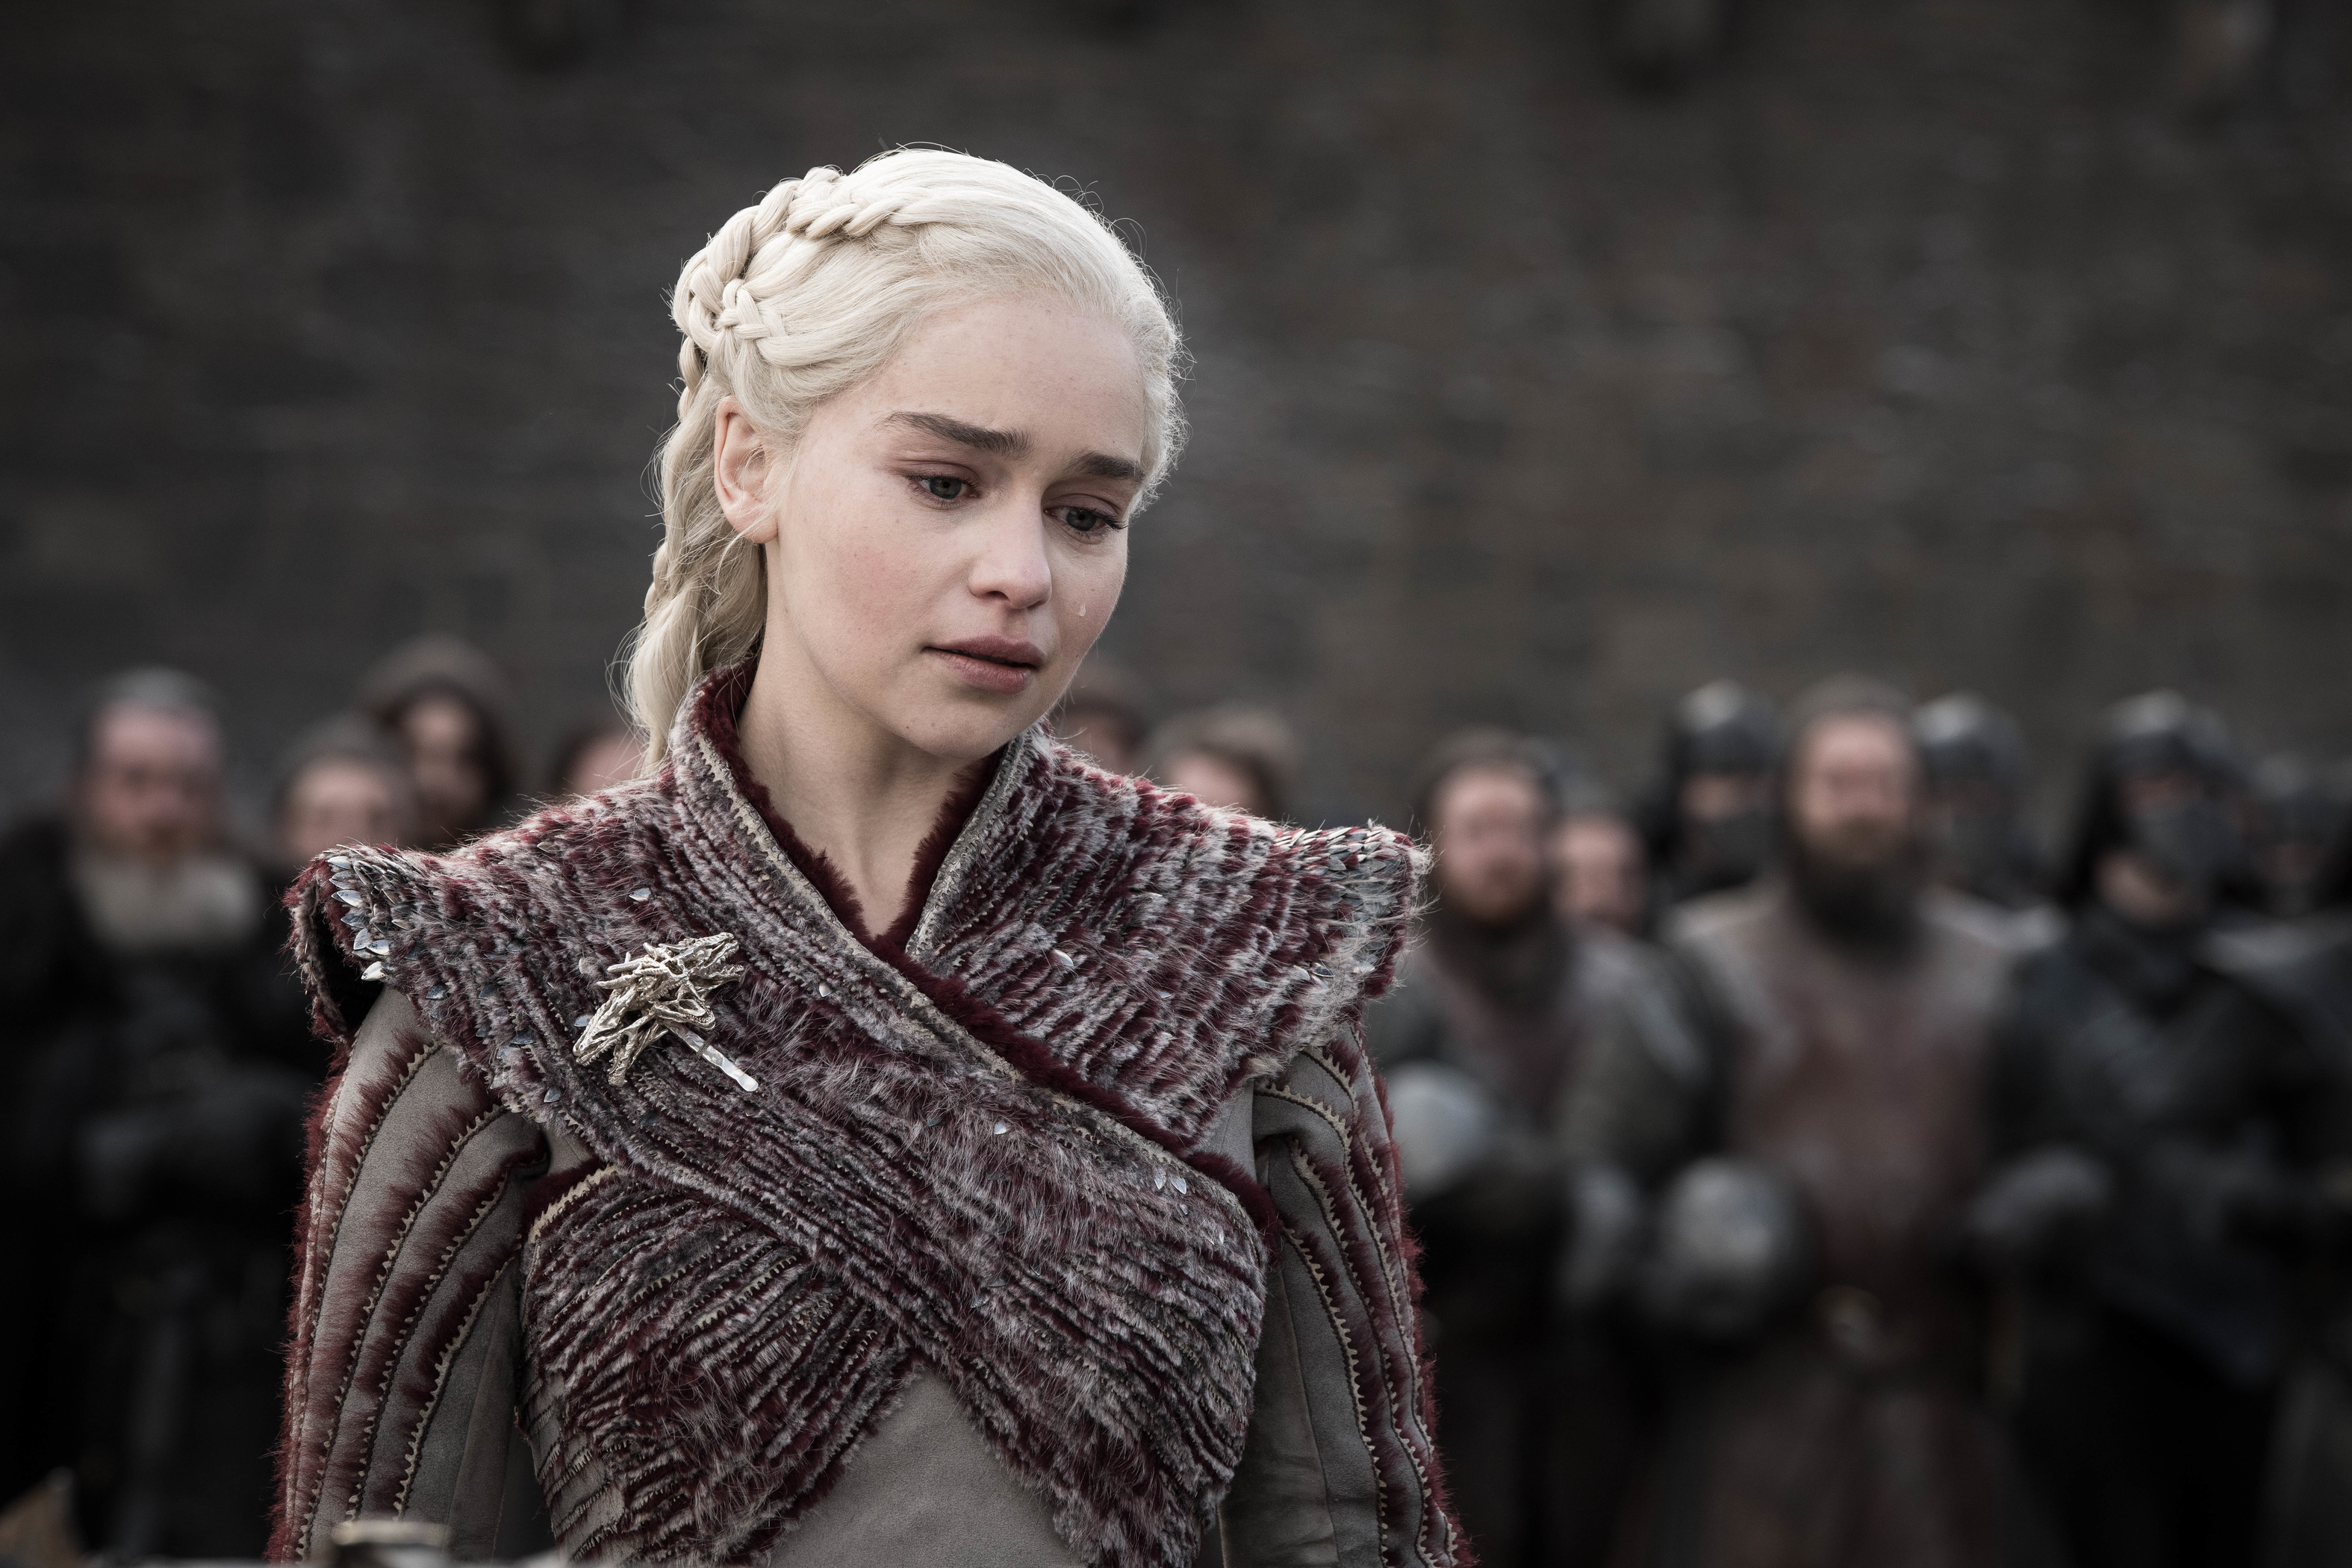 Emilia Clarke Was Told to Get Nude on 'Thrones' So Fans Wouldn't Be Disappointed